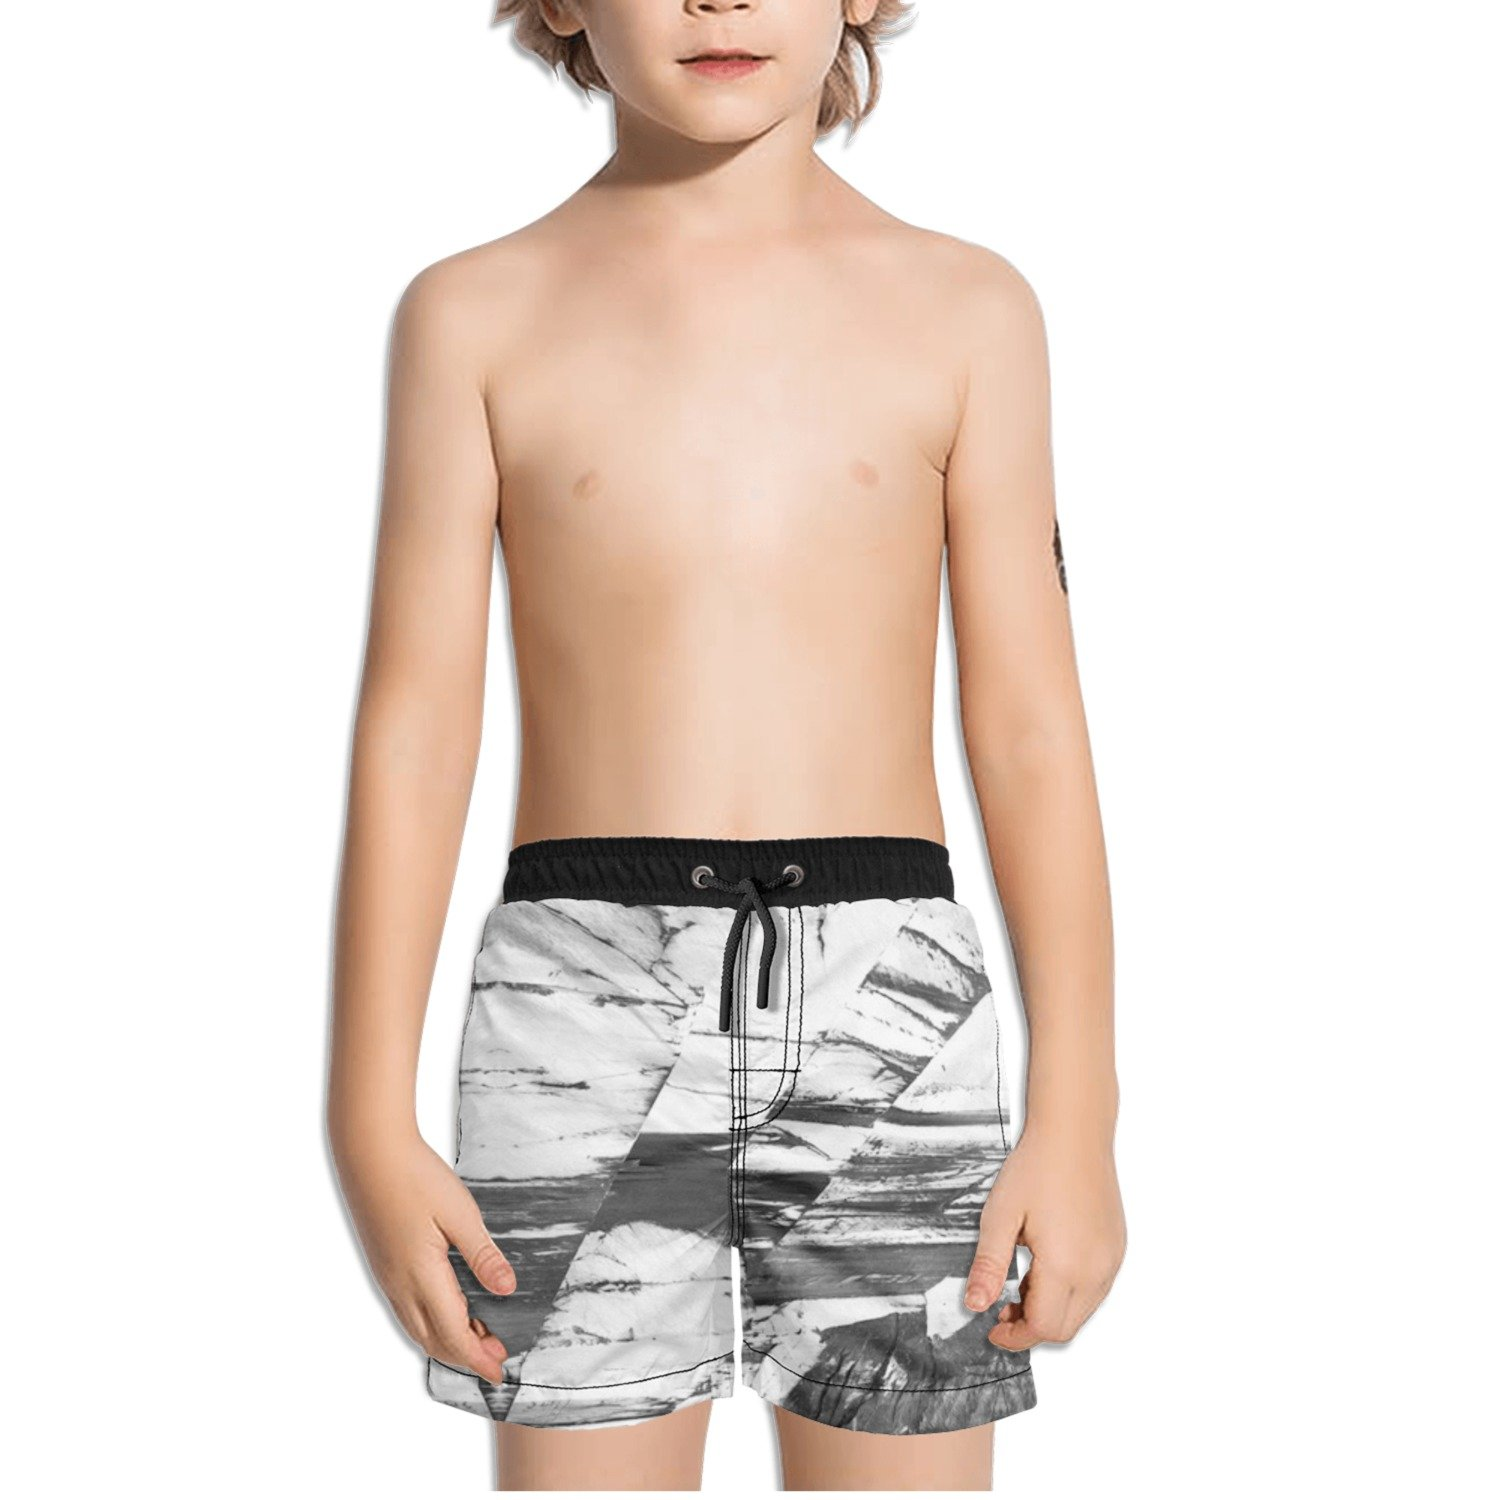 Ouxioaz Boys Swim Trunk Abstract White and Black Art Beach Board Shorts